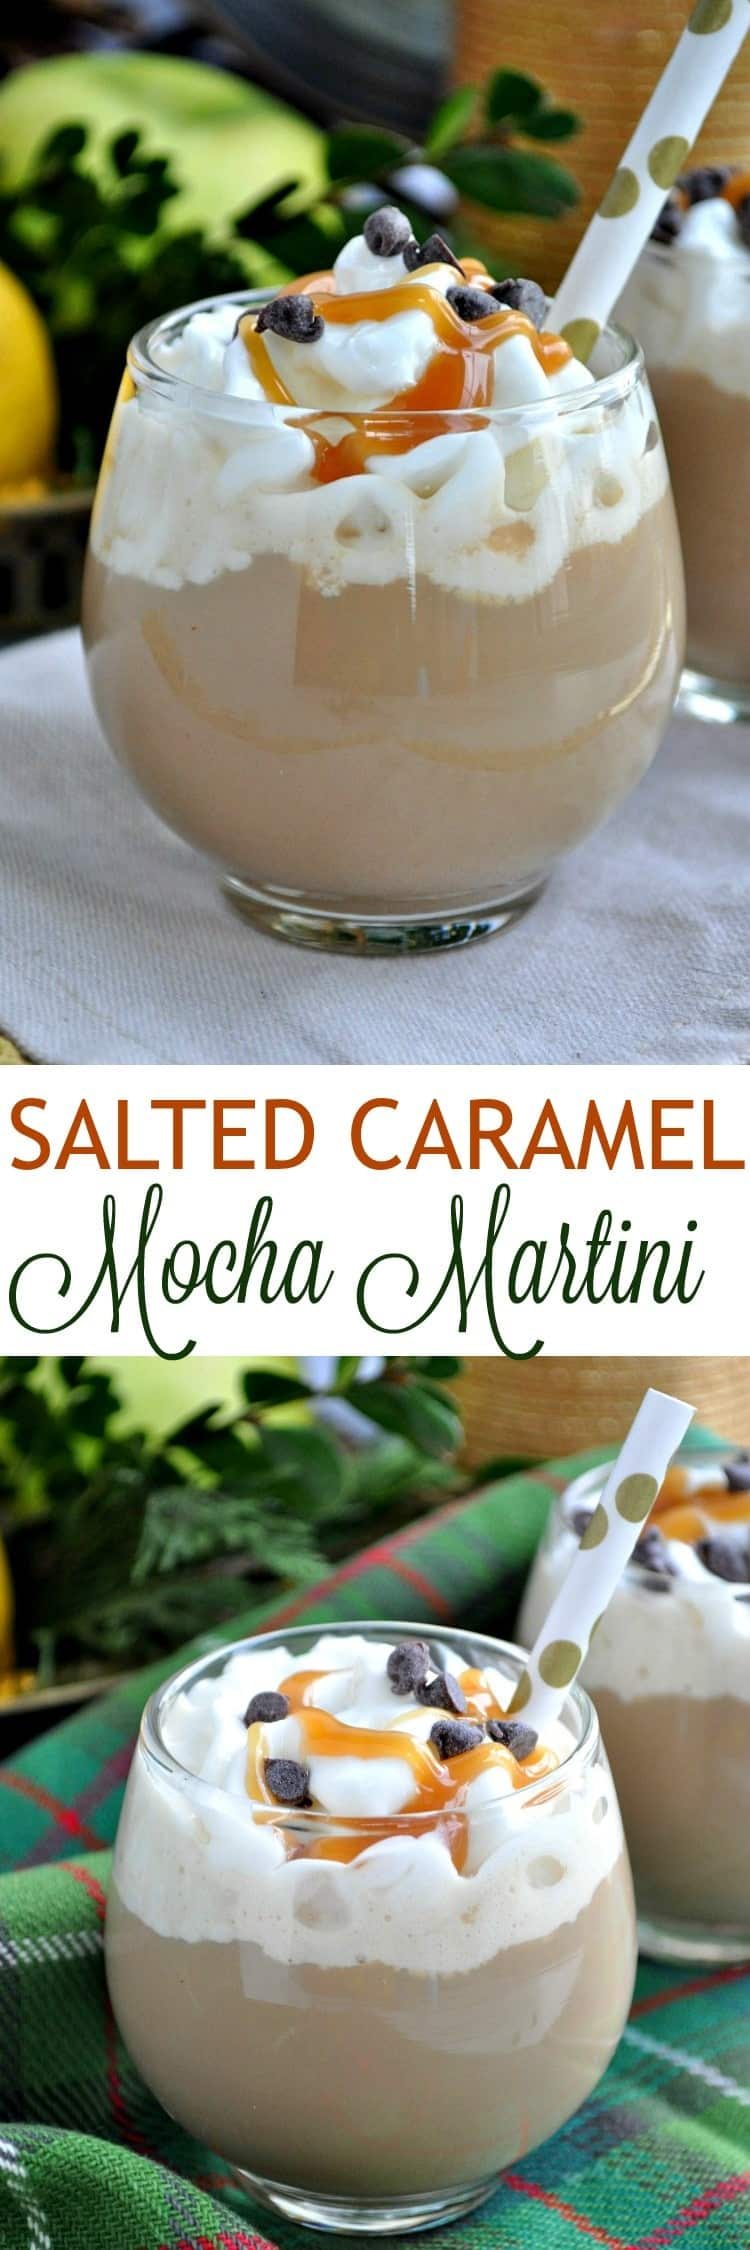 Celebrate this season with a Salted Caramel Mocha Martini! It's a simple and delicious cocktail for any special occasion!